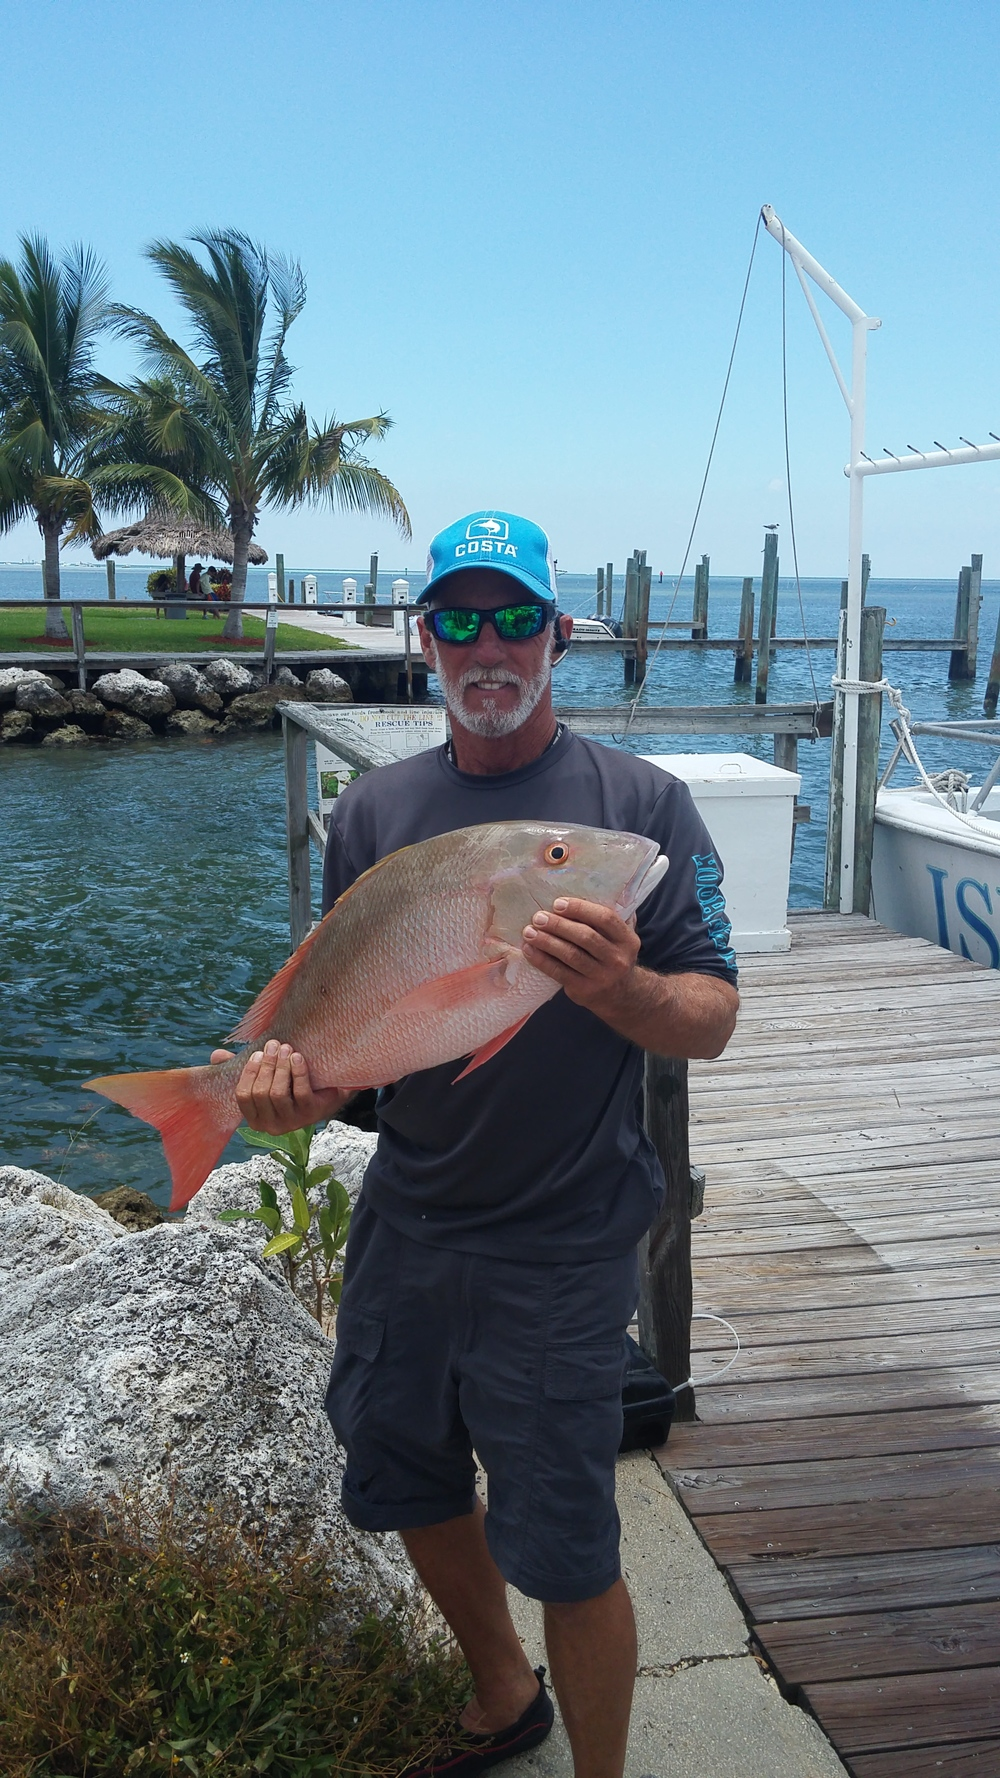 snapper from the reef